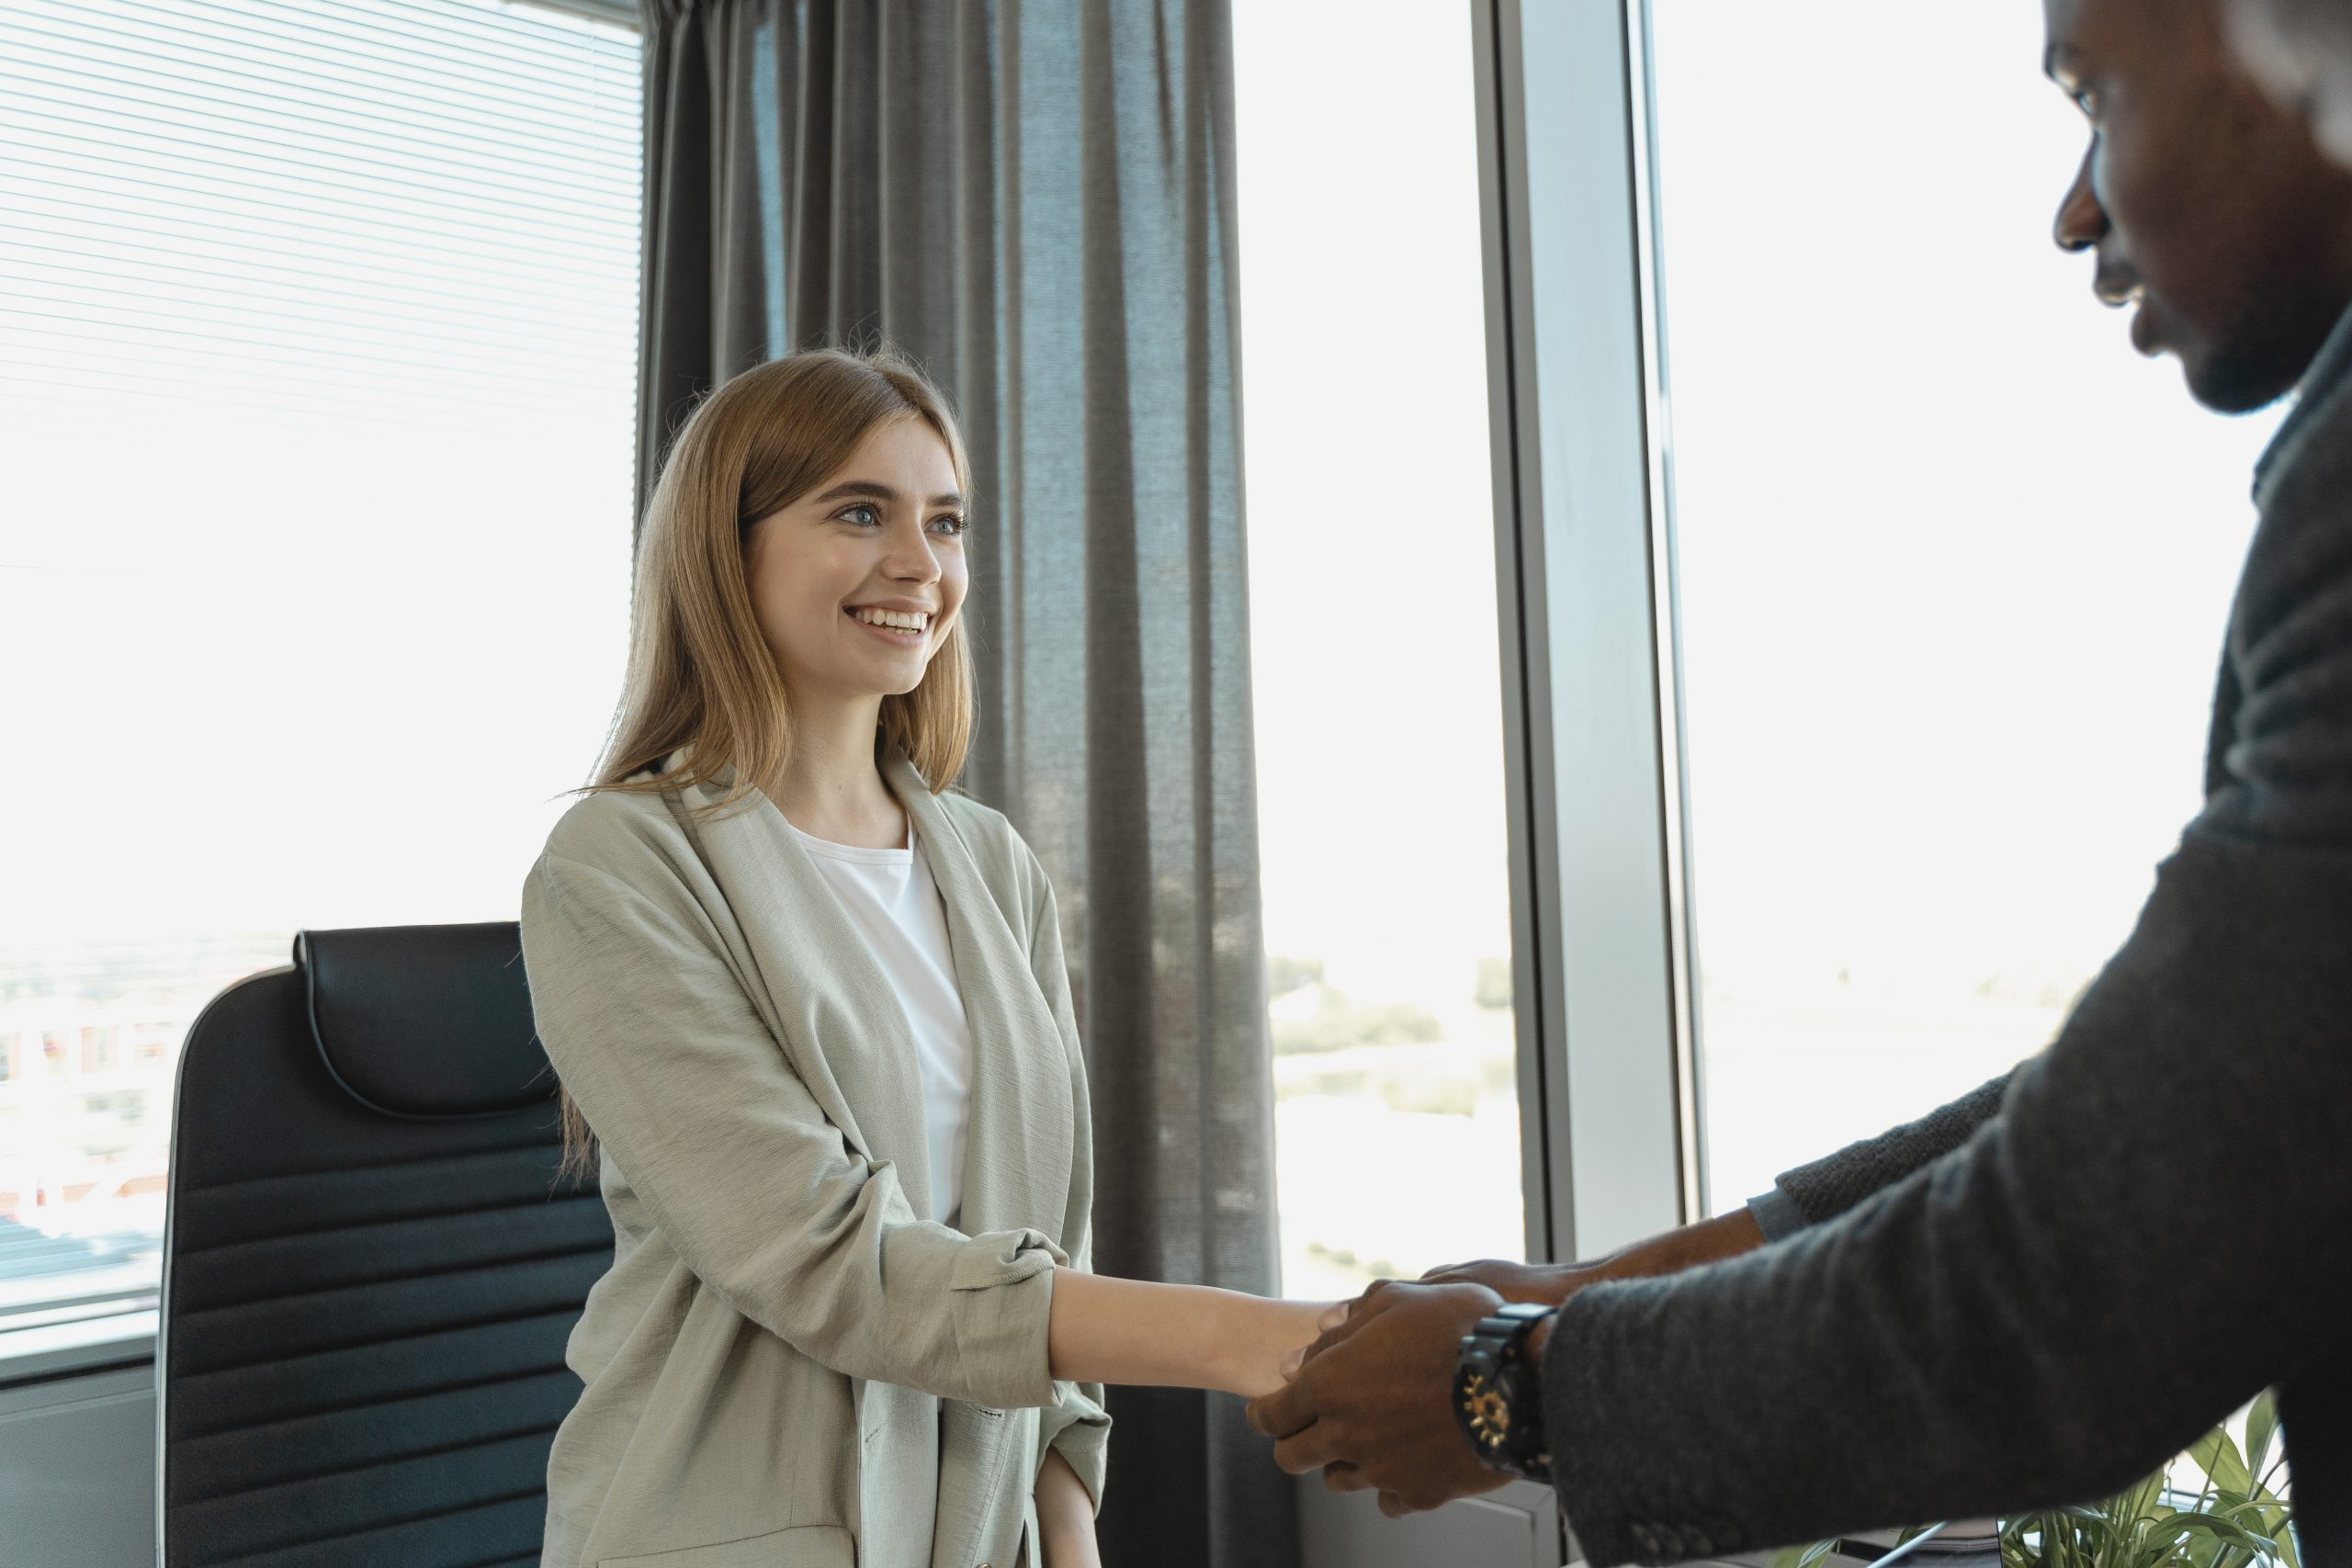 8 Tips to Crush Your Next Job Interview